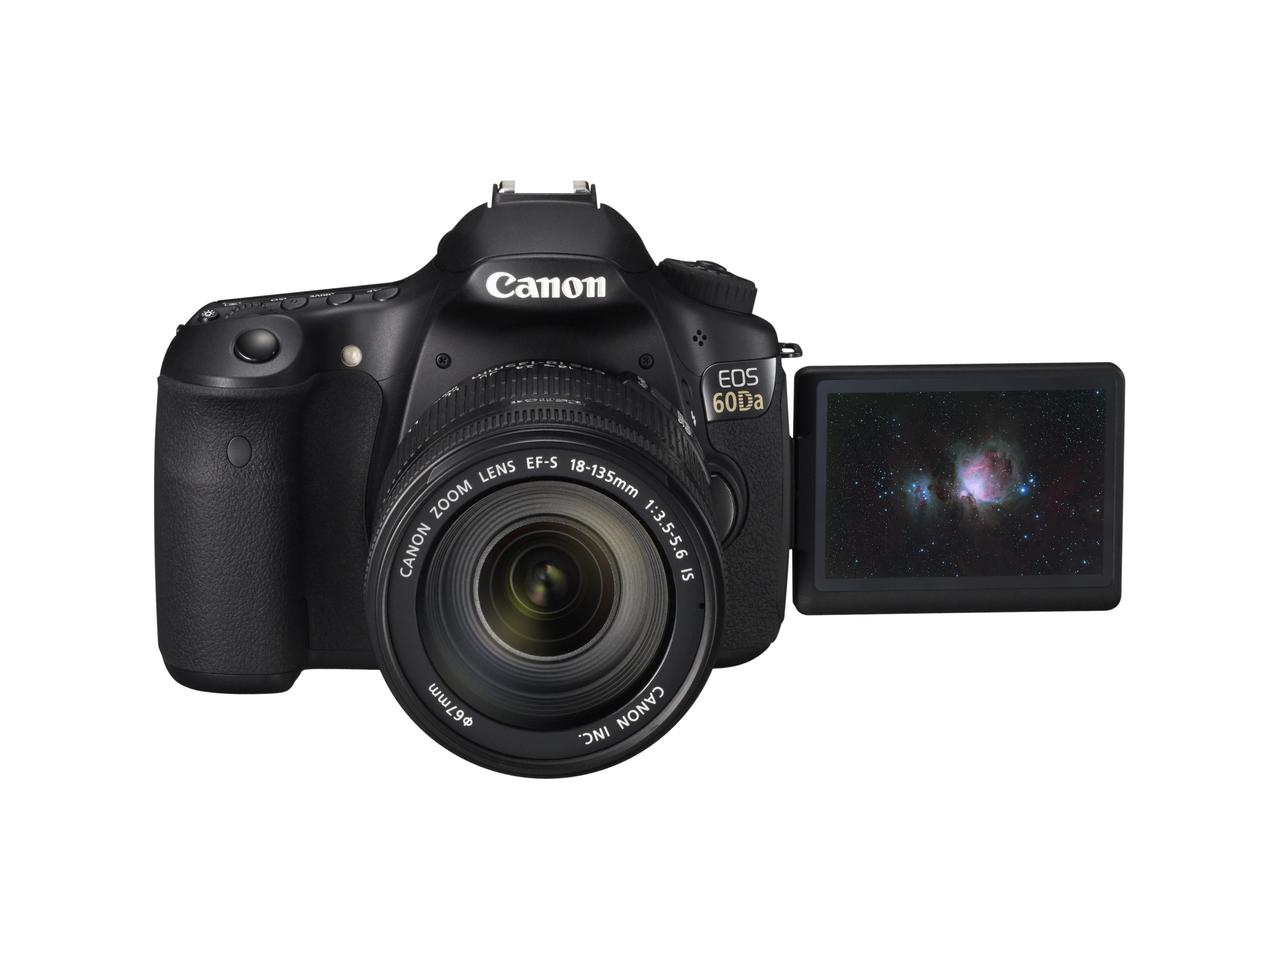 Canon has unveiled a long awaited update to 2005's EOS 20Da digital SLR camera, the new 60Da has been specially optimized for astrophotography